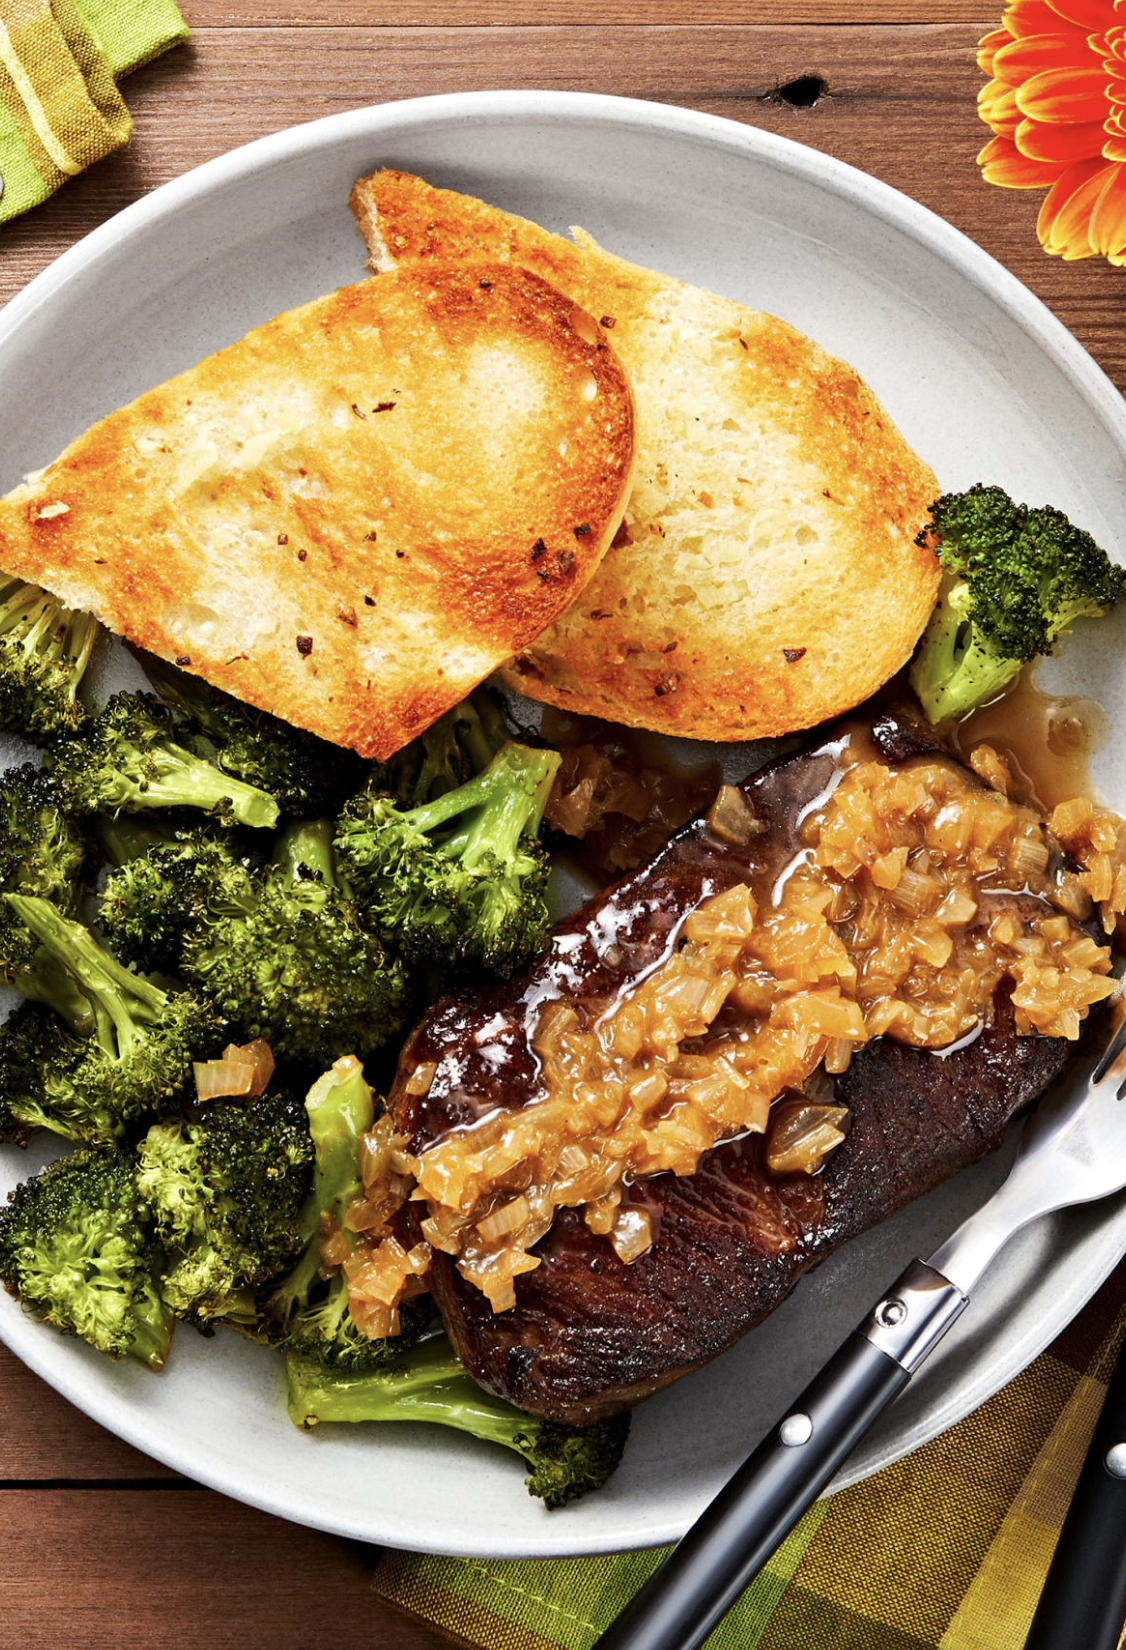 Sirloin And Shallot Pan Sauce With Garlic Bread And Spicy Roasted